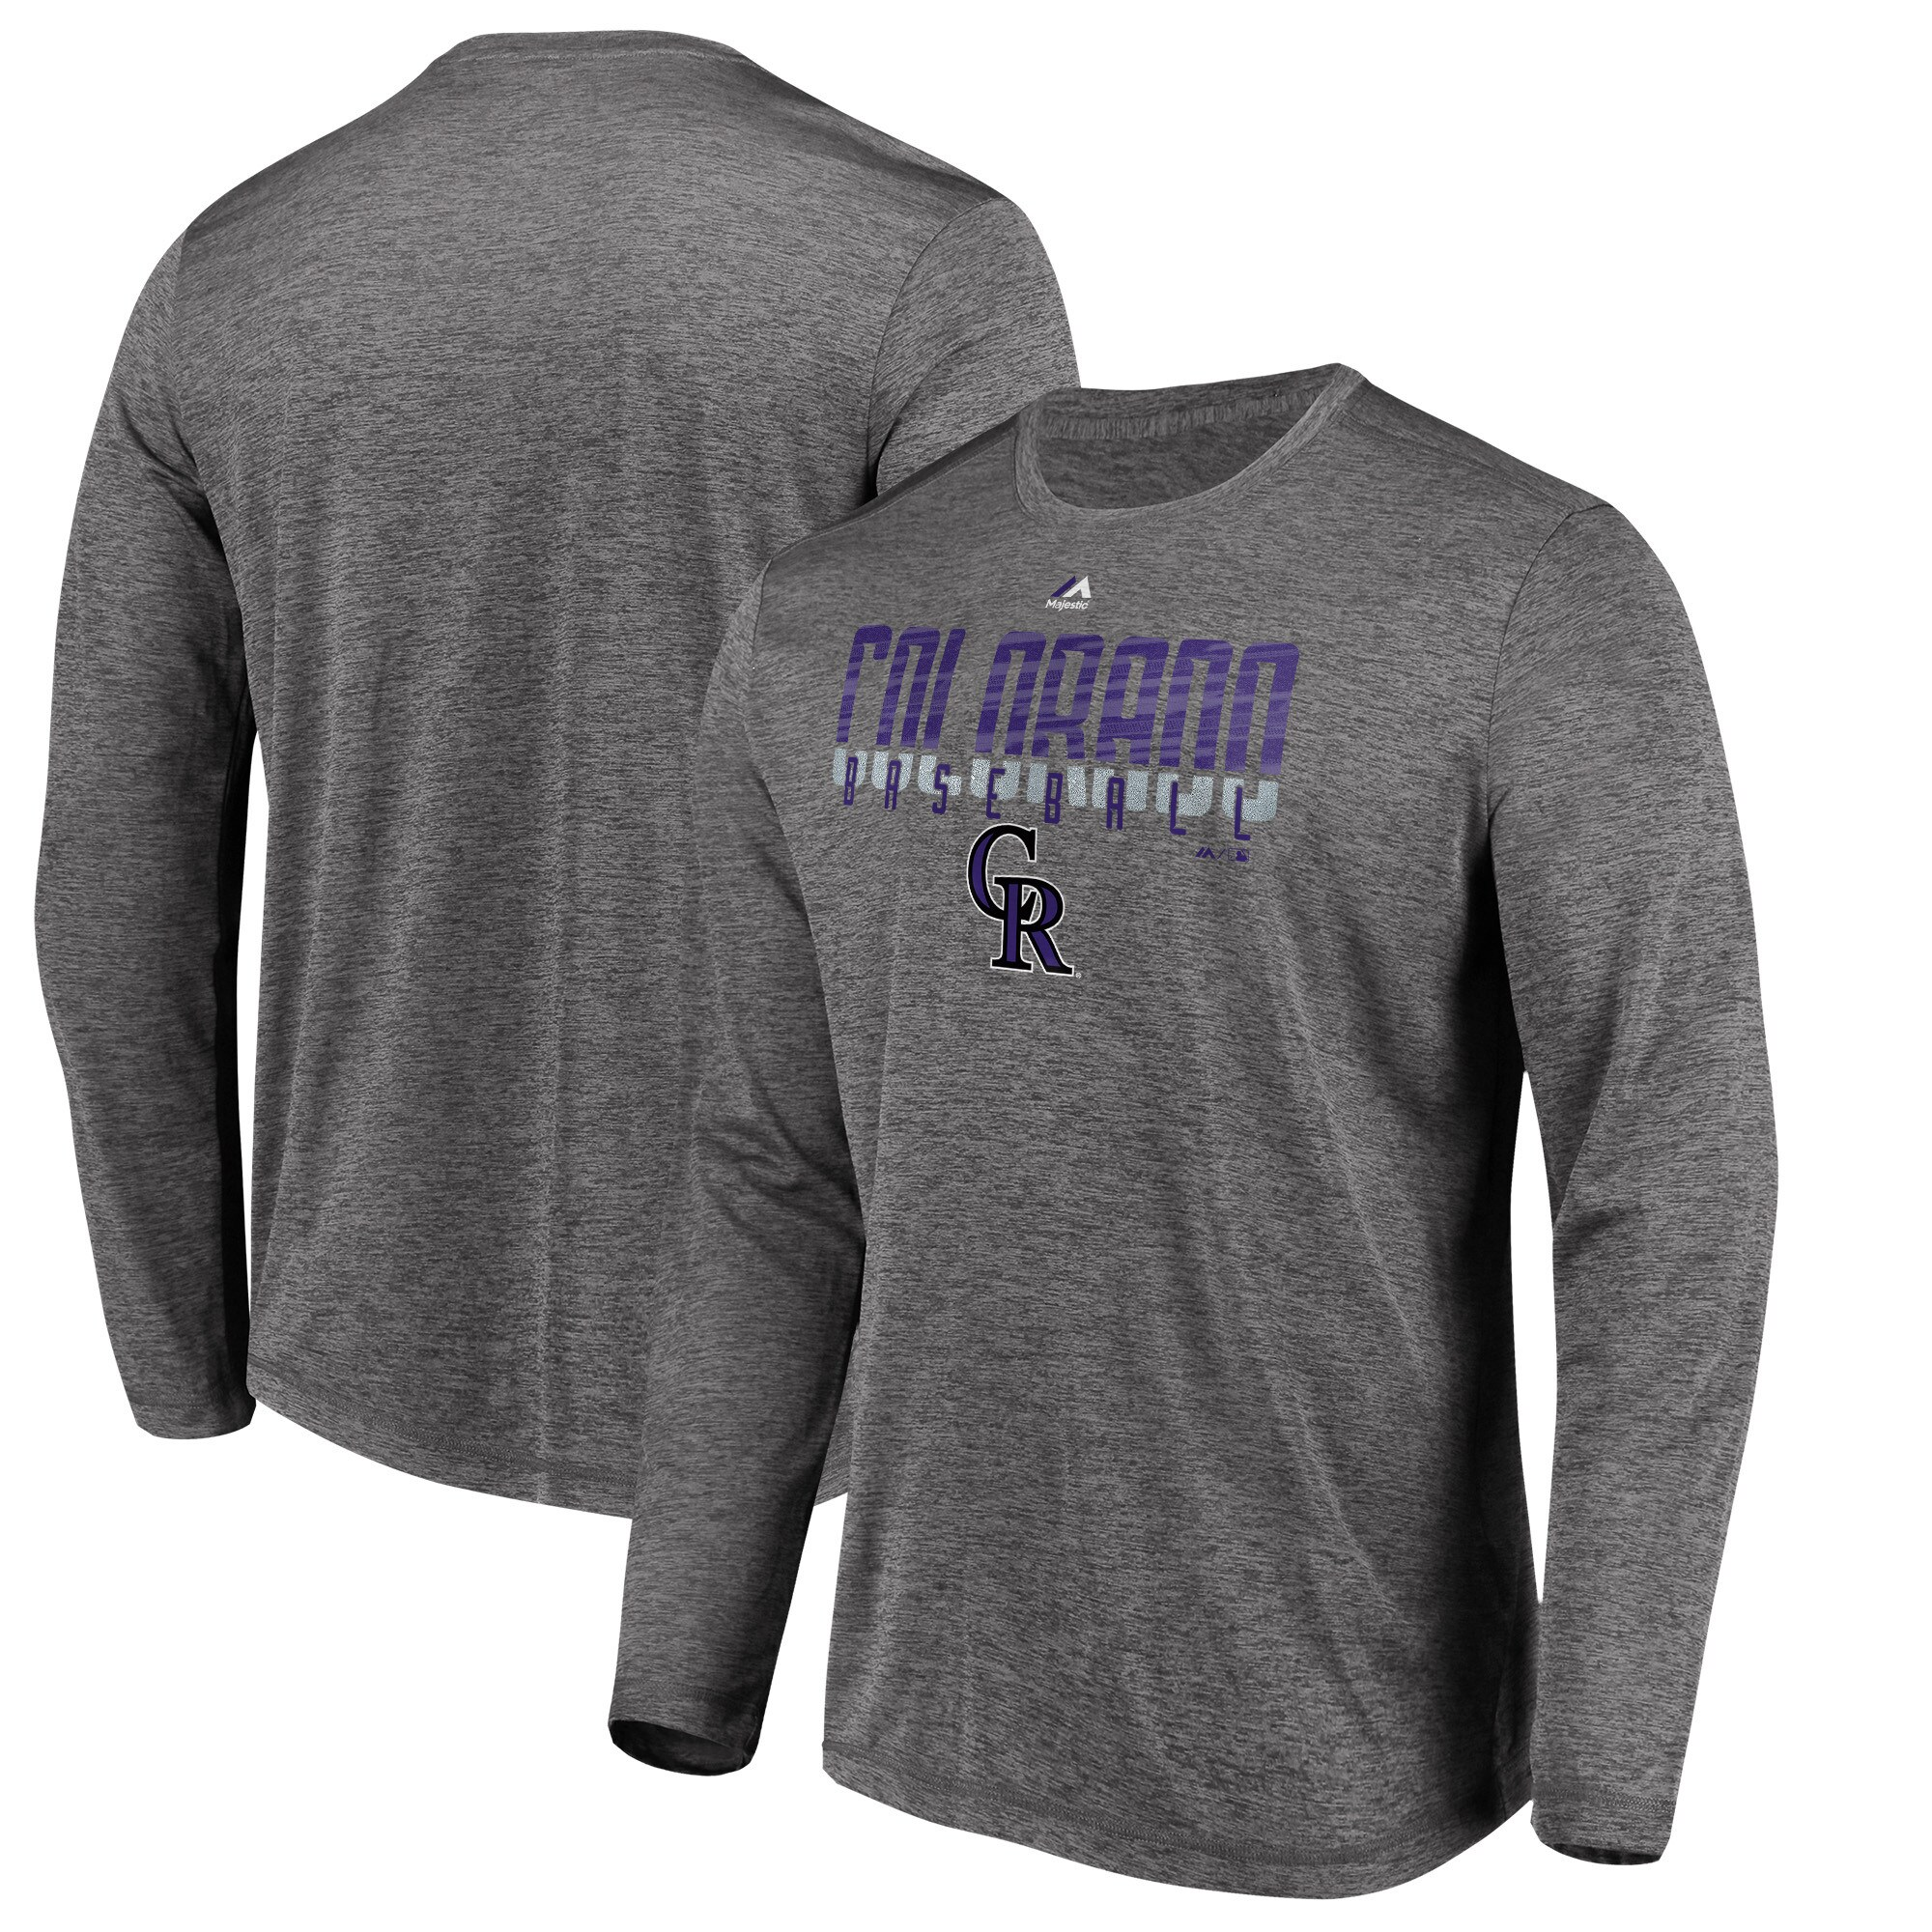 Colorado Rockies Majestic Unstoppable Force Long Sleeve Cool Base T-Shirt - Charcoal